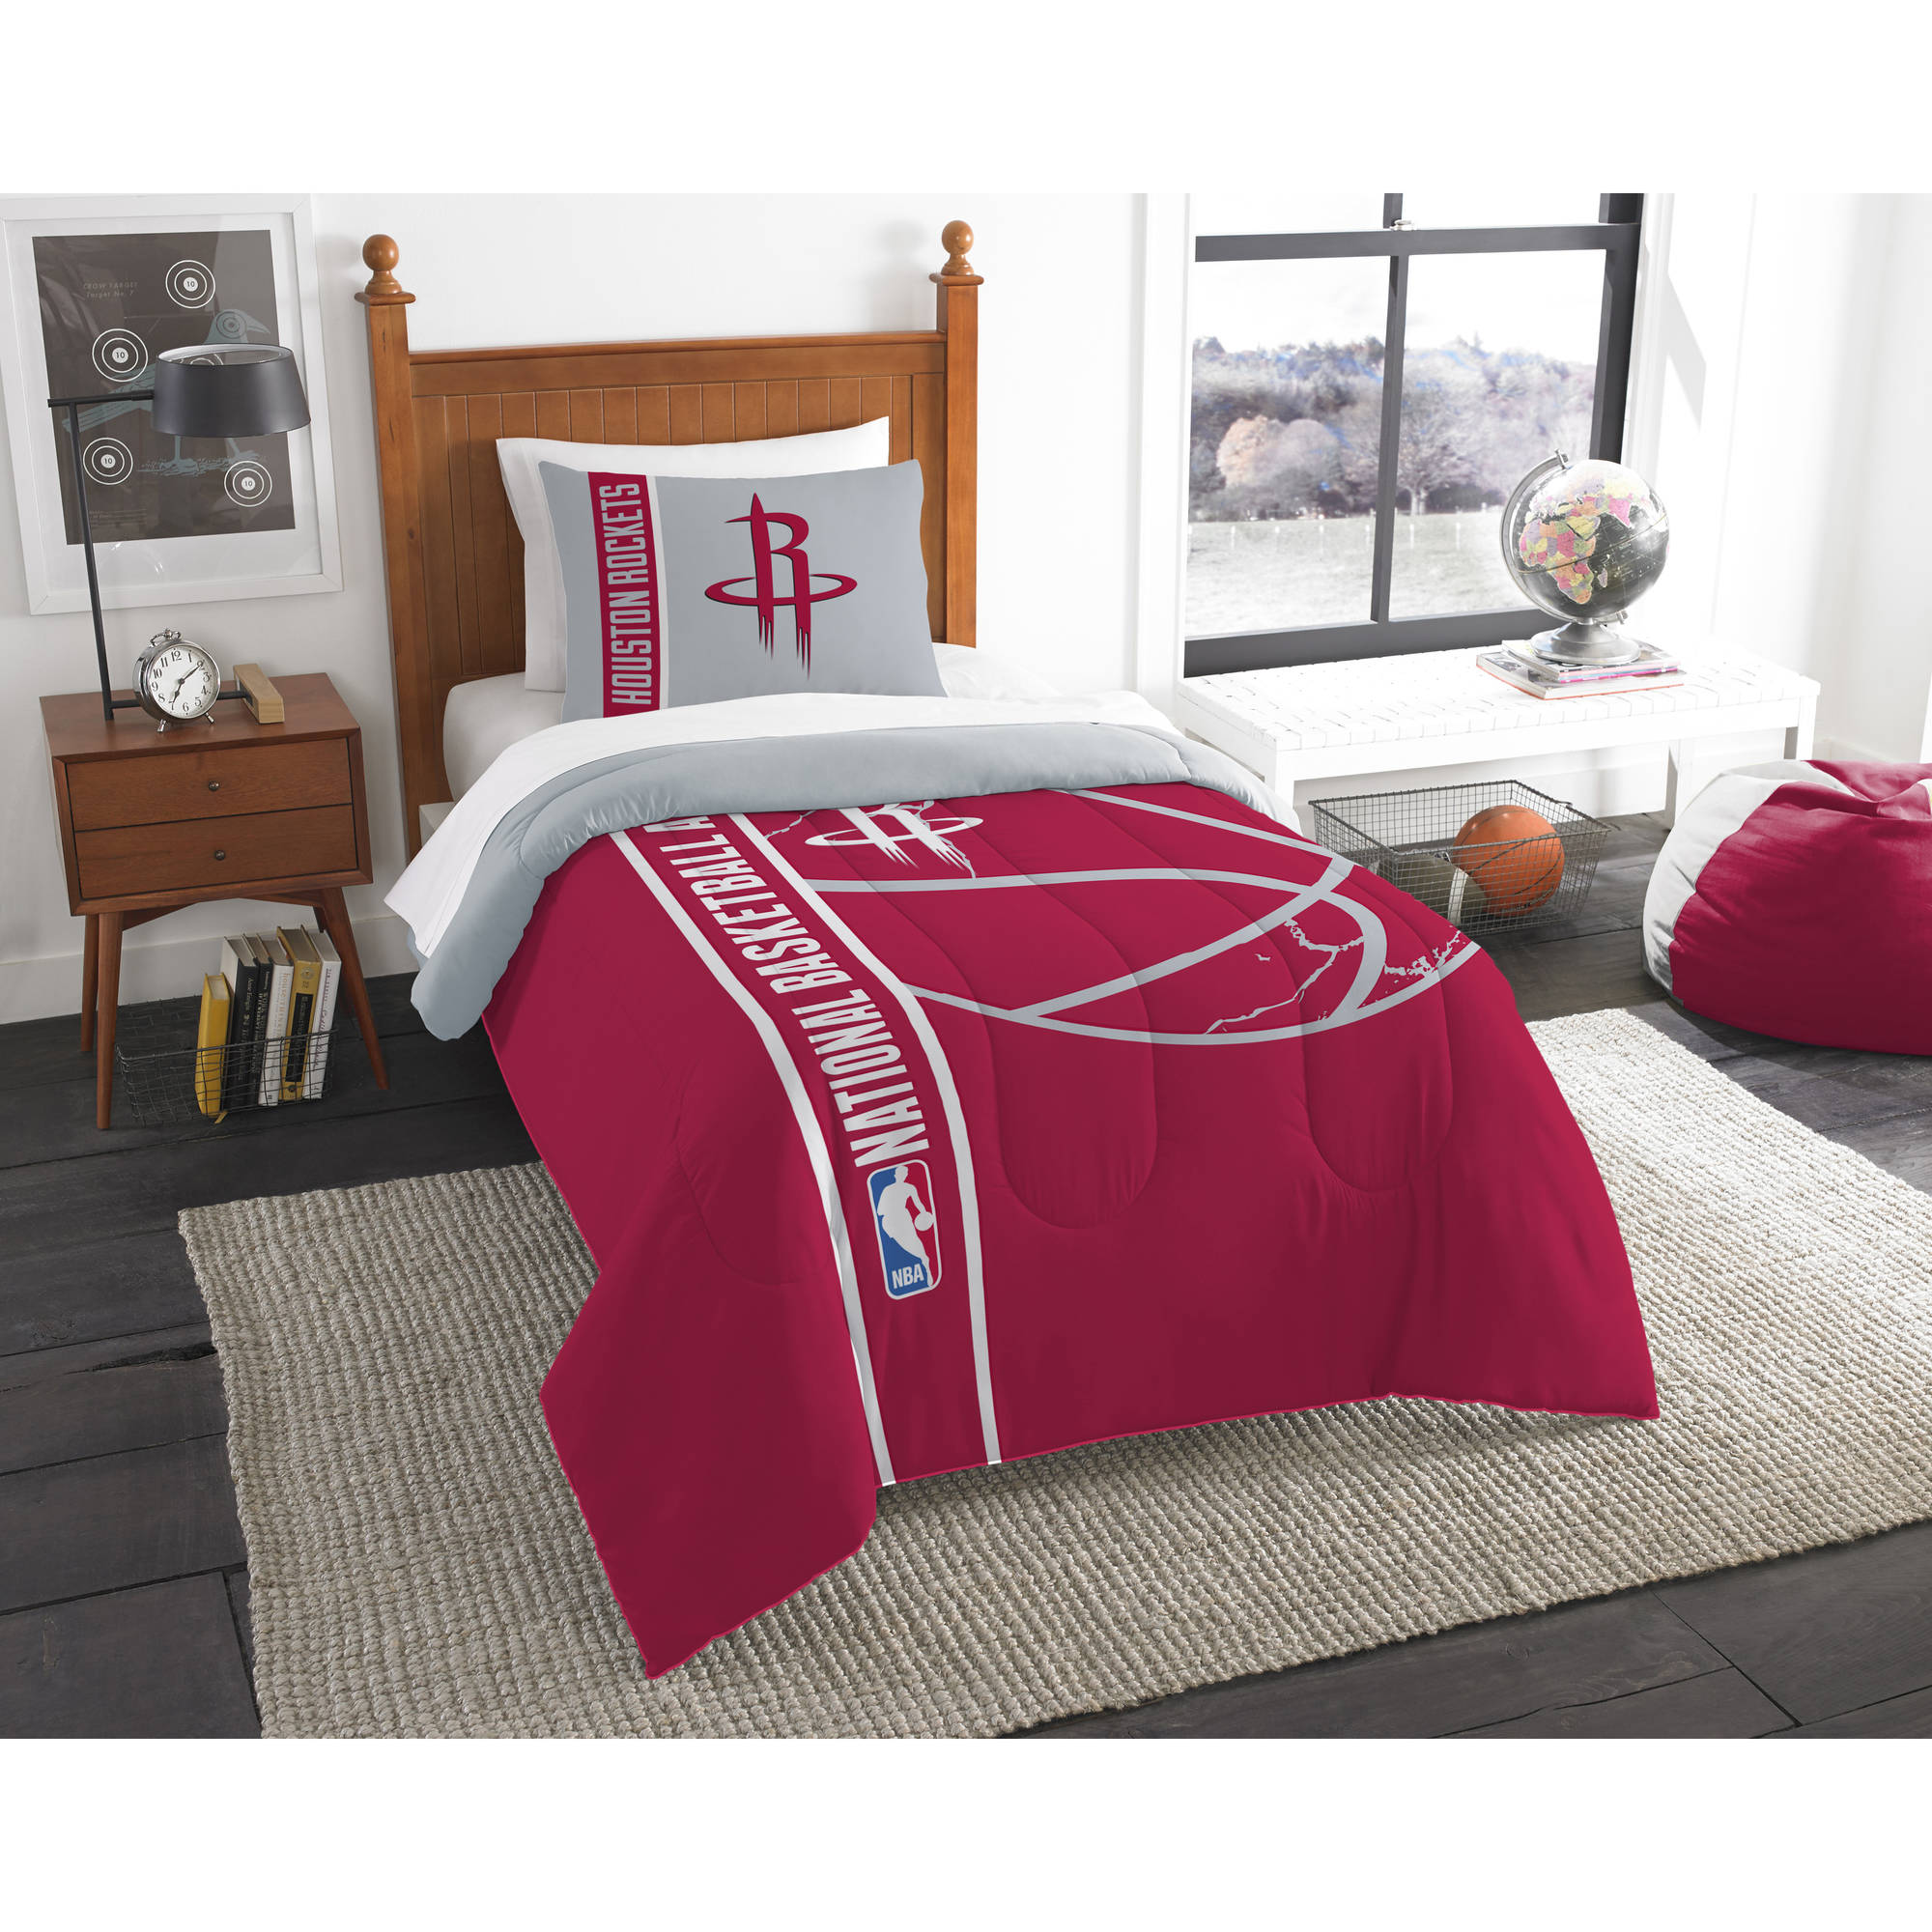 "Houston Rockets NBA Printed Comforter & Sham Set (Twin) (64"" x 86"")"